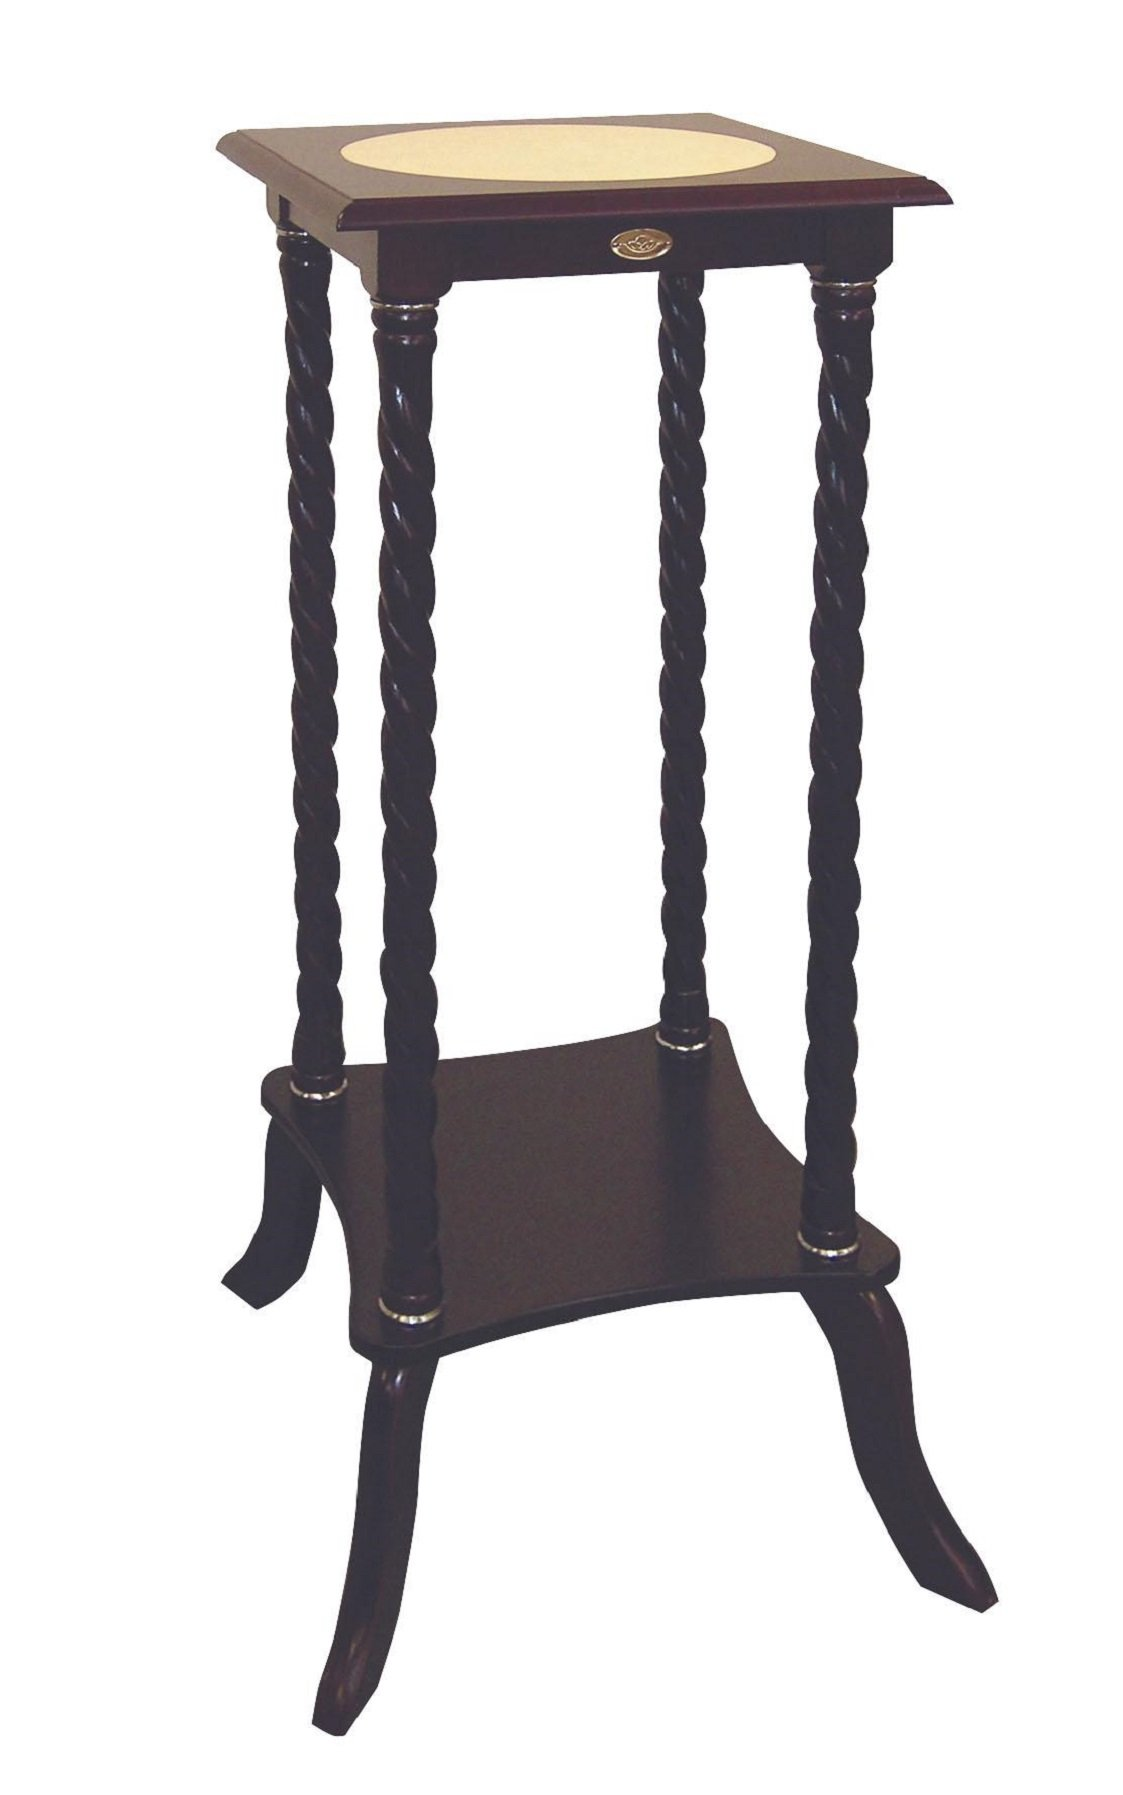 Frenchi Furnisure H-329 plant Stand in Cherry